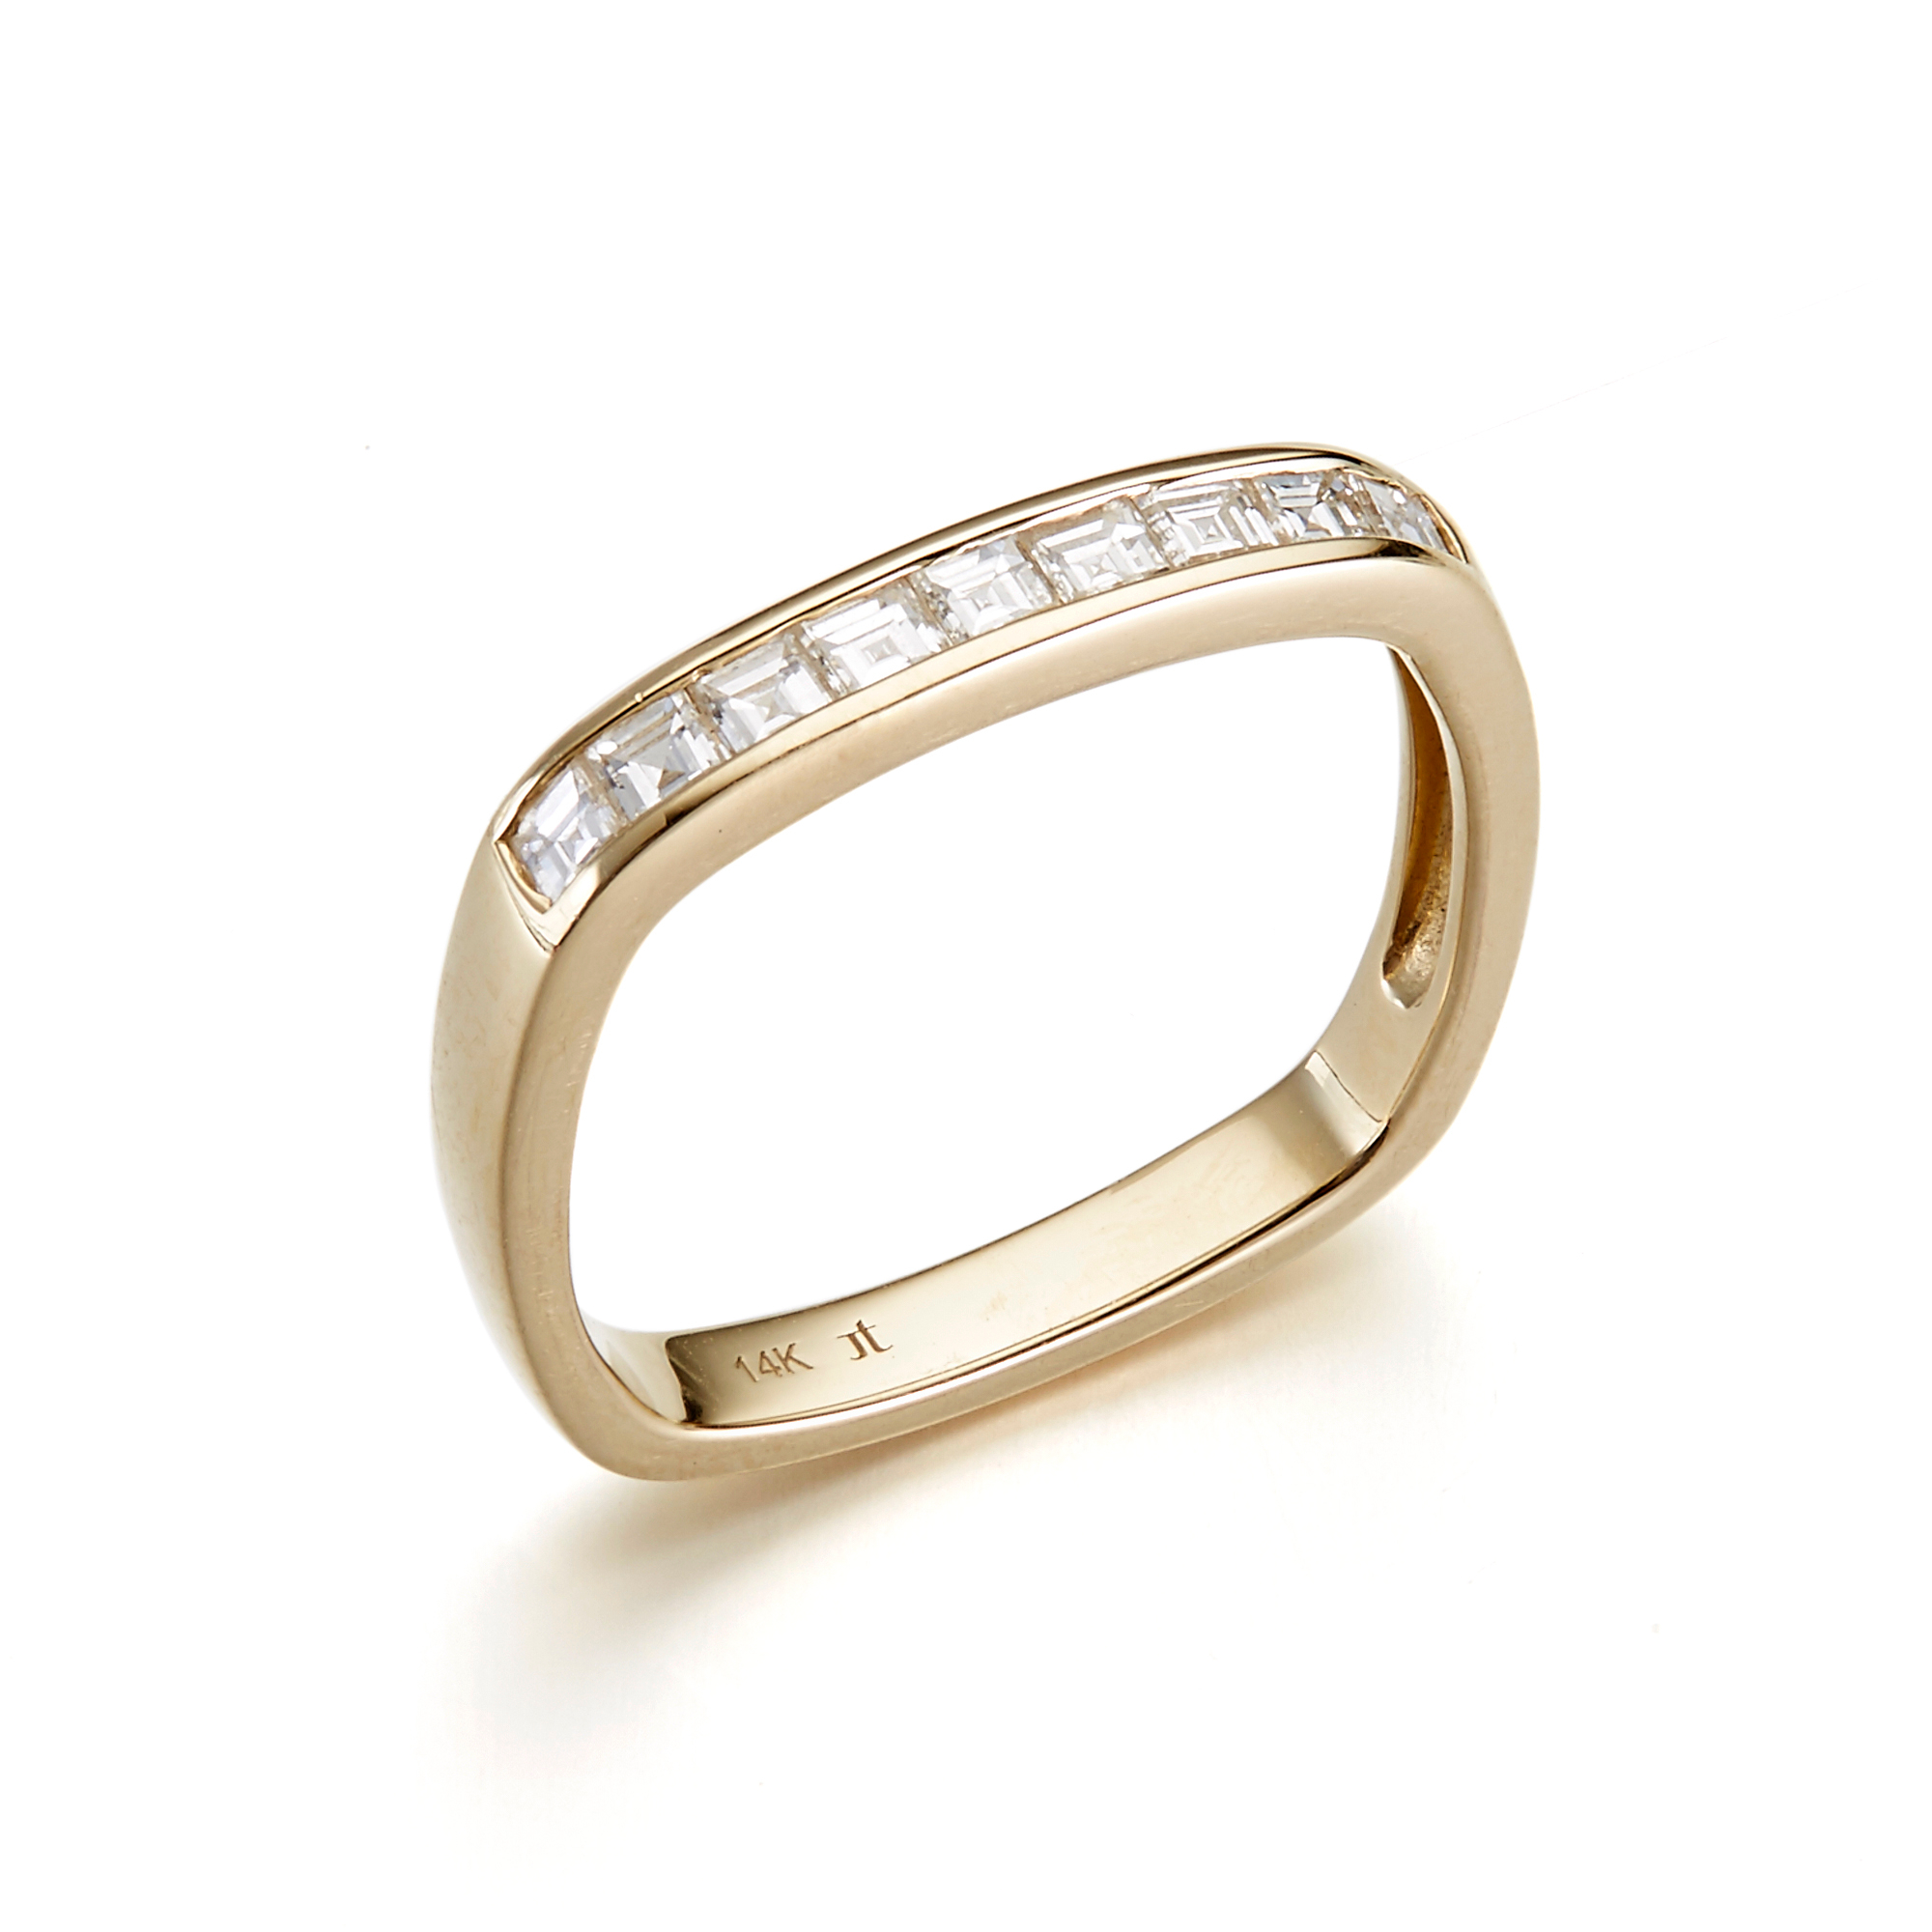 Jane Taylor Channel Set Diamond Square Band Ring, 2mm